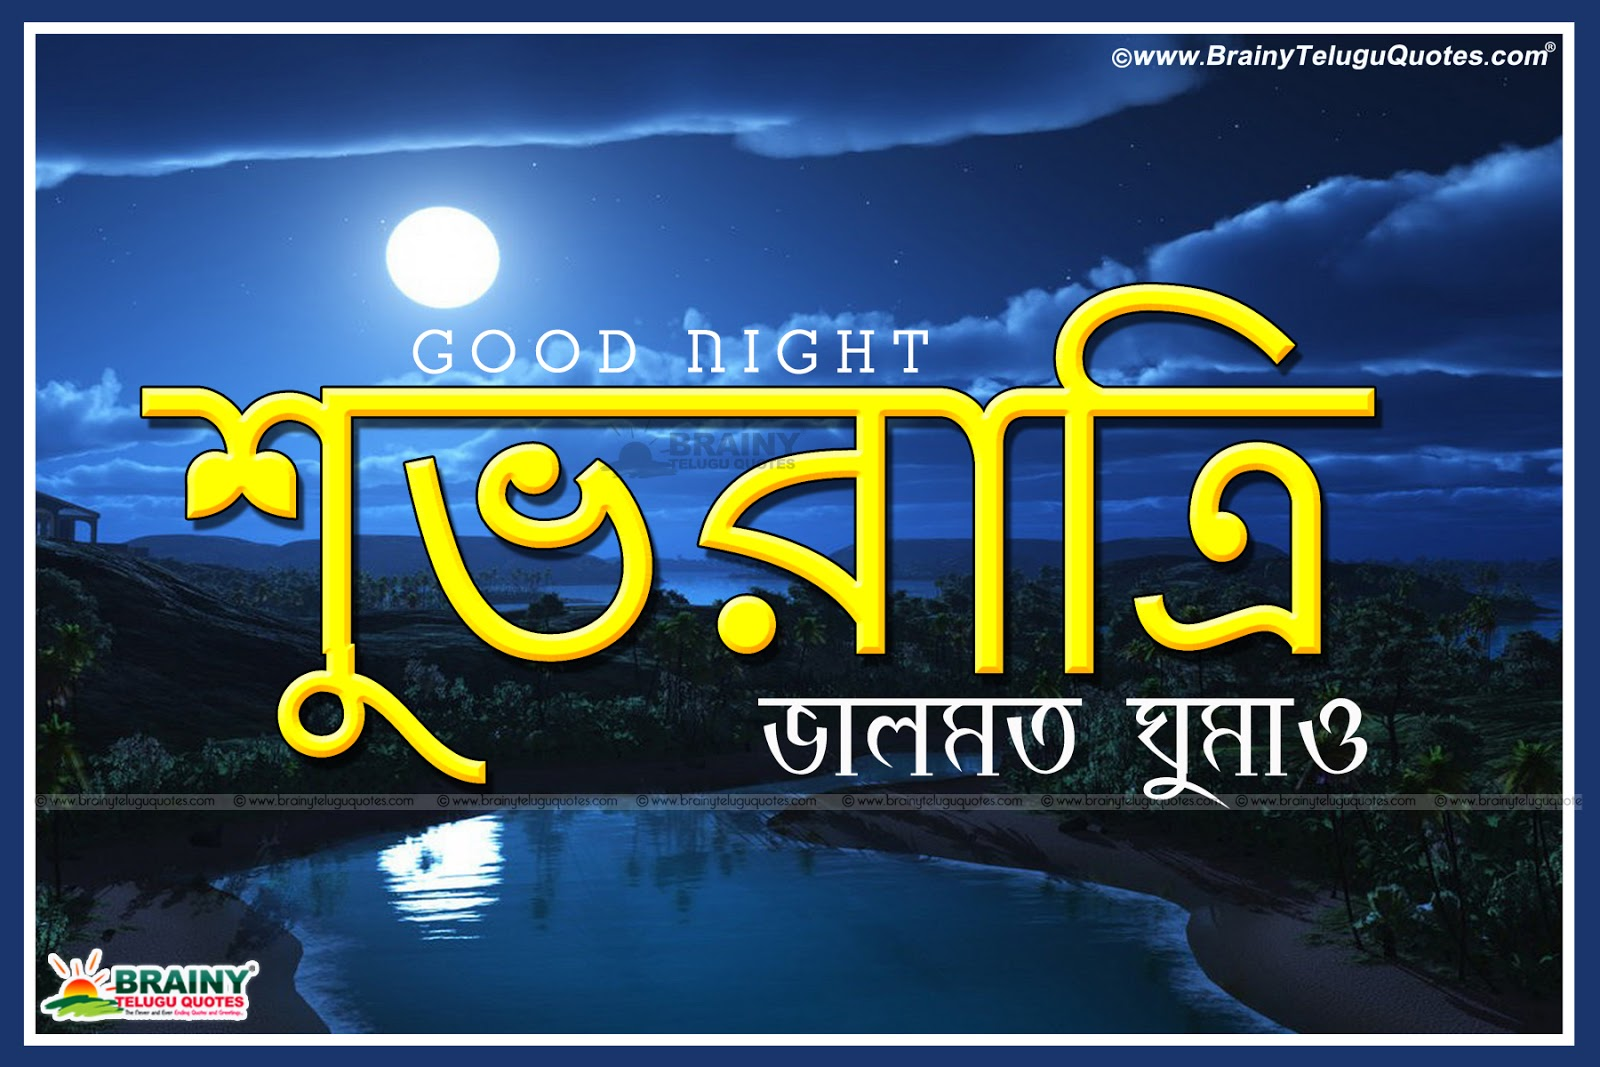 Top Bengali Good night messages for whatsapp ...